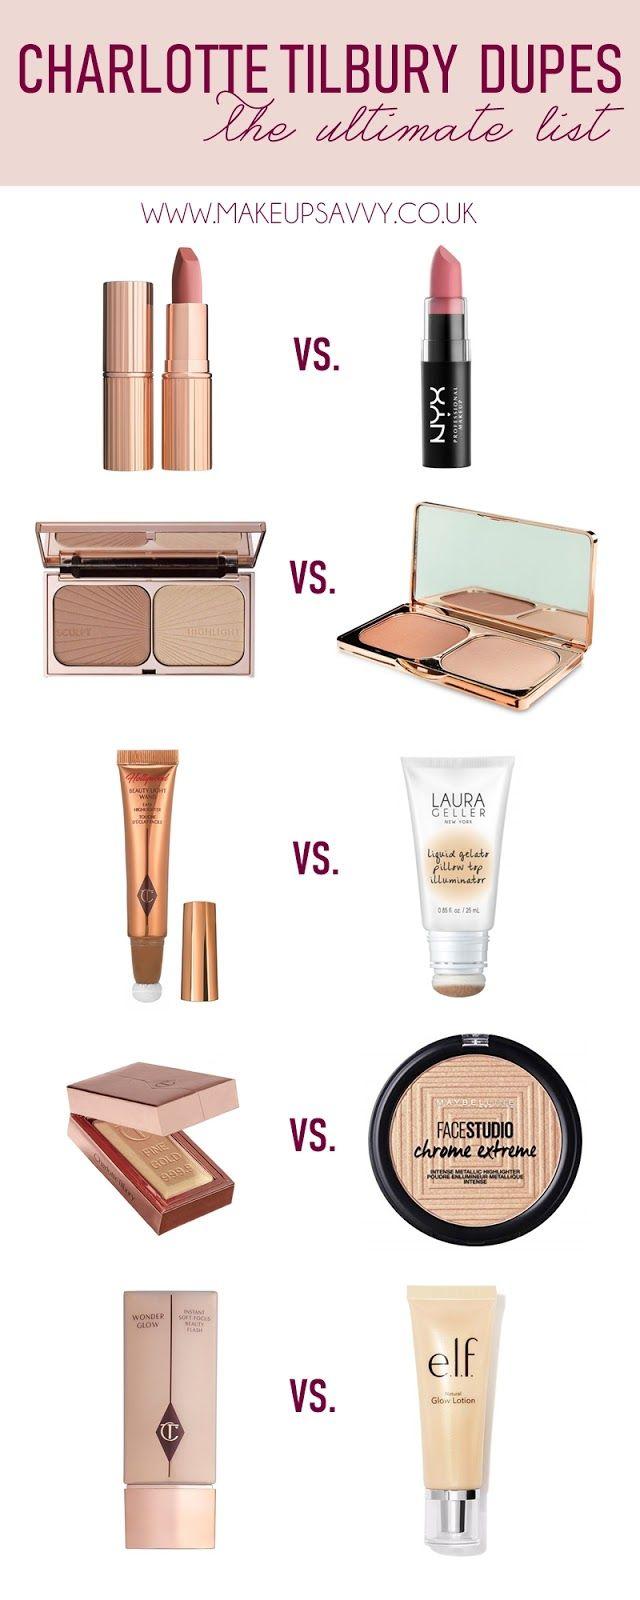 The Ultimate Charlotte Tilbury Dupe List The Ultimate Charlotte Tilbury Dupe List Makeup Products best makeup products